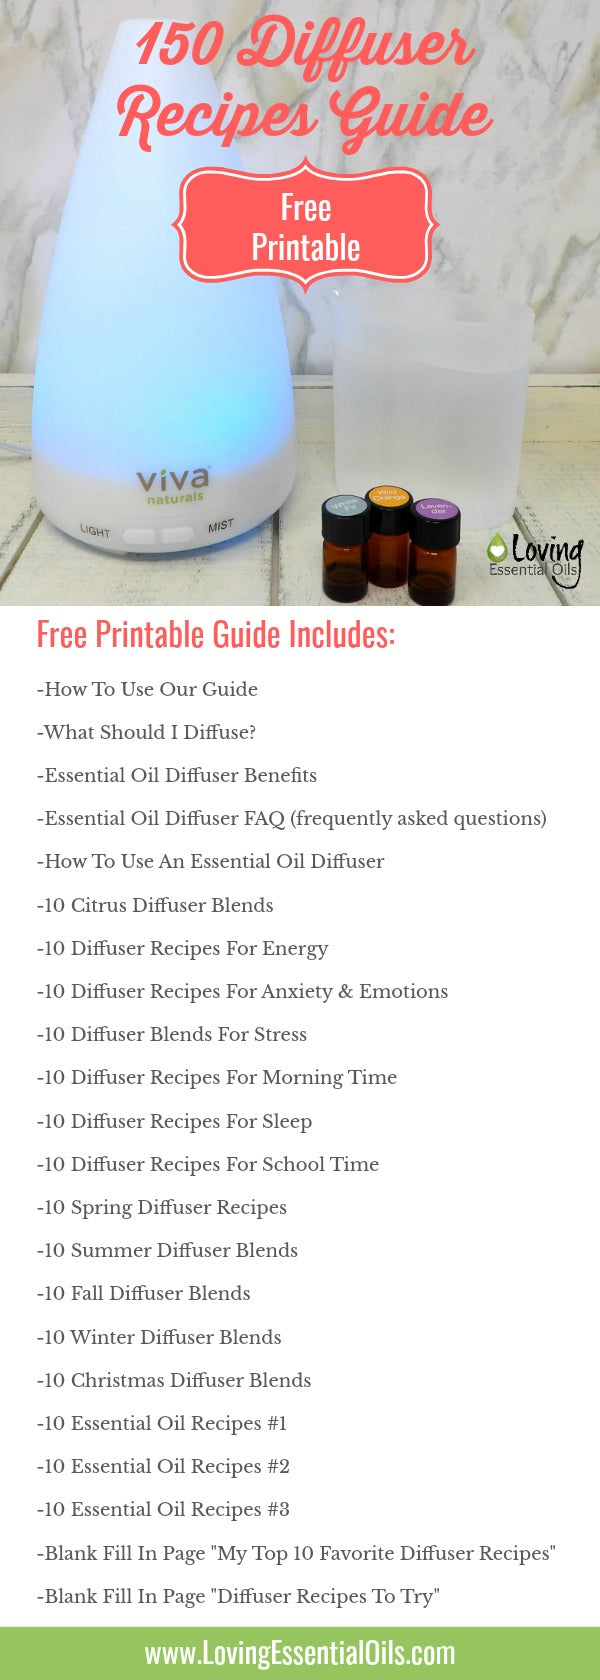 150 Free Printable Essential OIl Diffuser Blends Recipe Guide